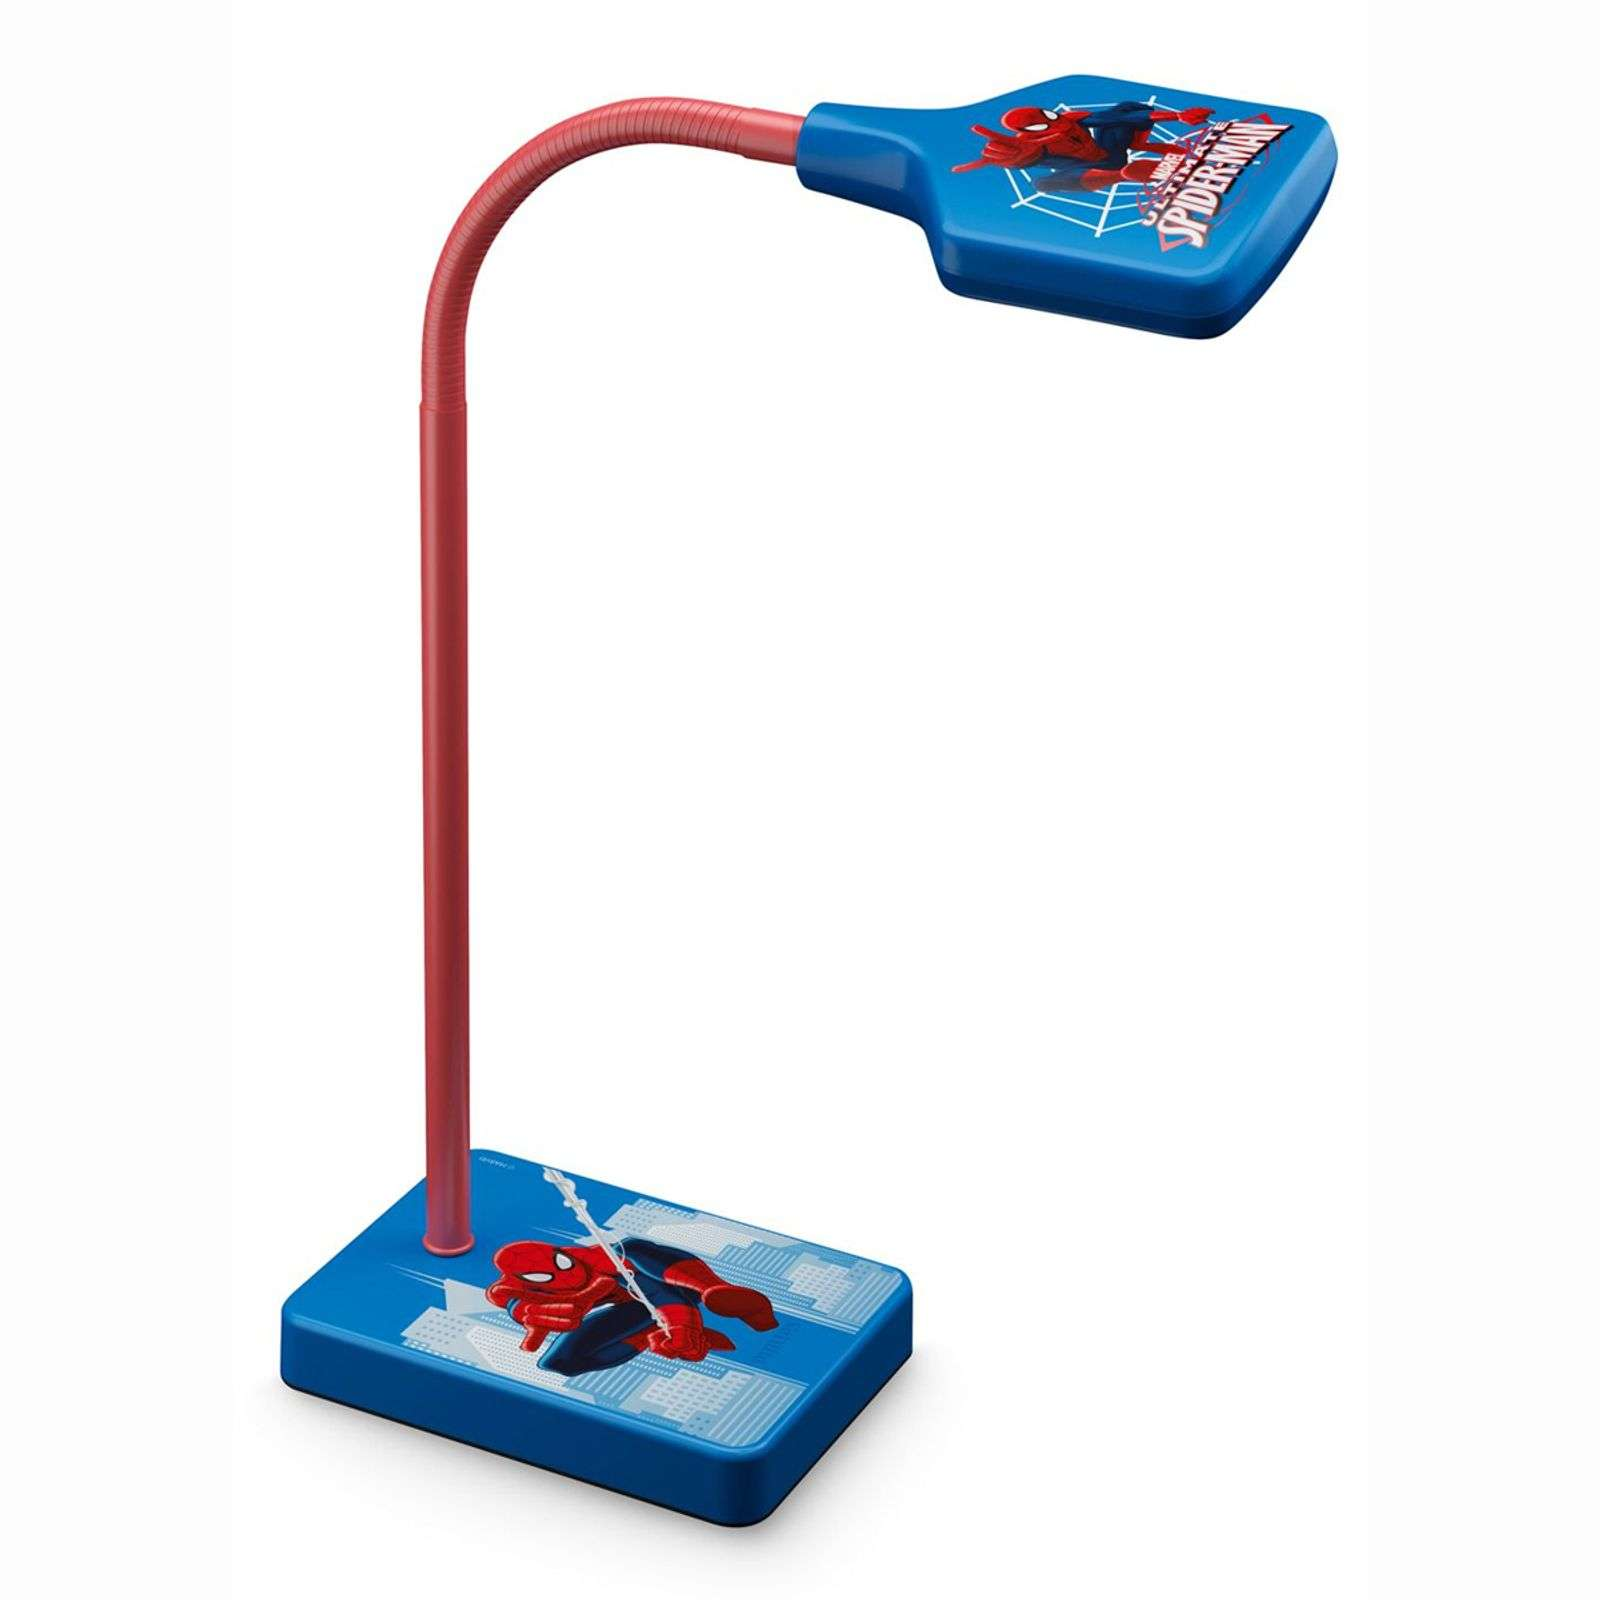 Lampe à poser LED Spiderman, chambre d'enfant